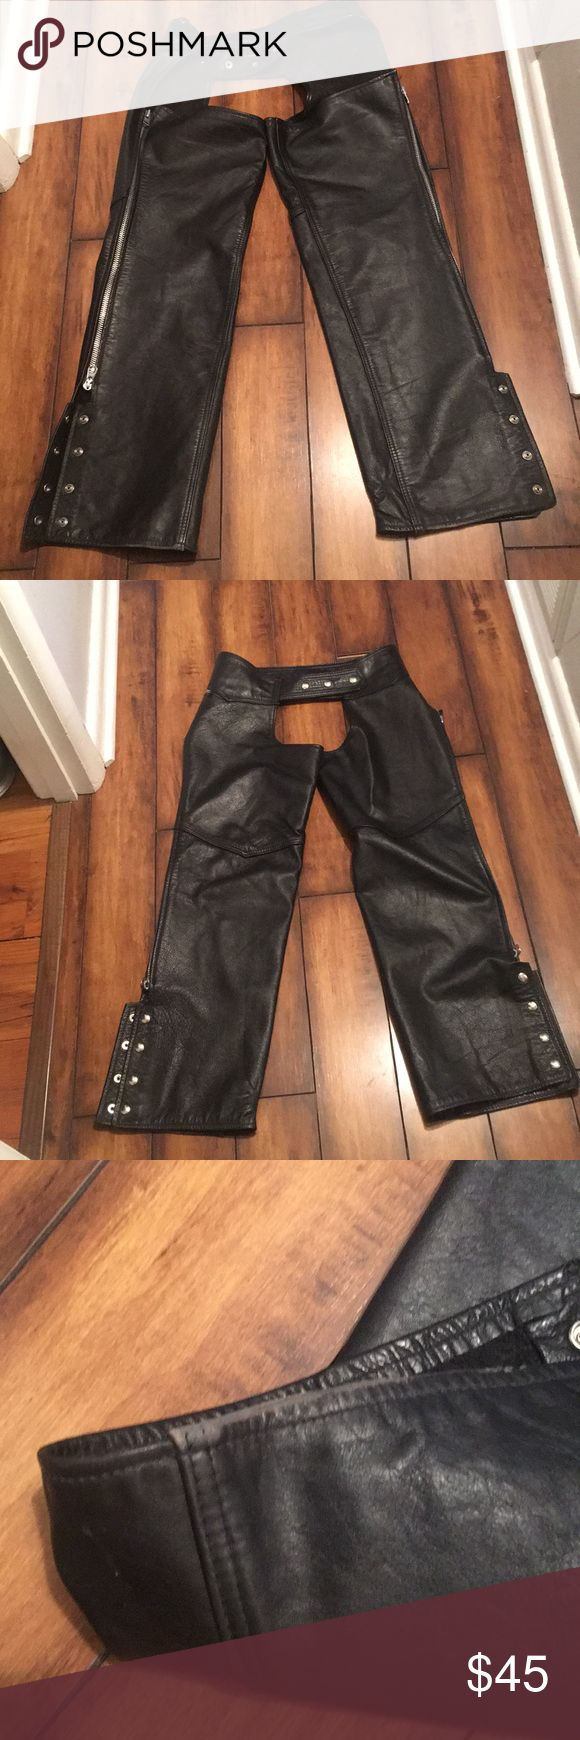 Leather Motorcycle Chaps Very thick high quality leather.  Really good used condition with minor flaws....see pictures.  Flaws only noticeable when pointed out. Scuffing on bottom of pant leg and melted leather patch at bottom on inside right leg.  Measurements 32waist; 24 Top thigh; 30 inseam.  Please make an offer!😁 Reed Sportswear Pants